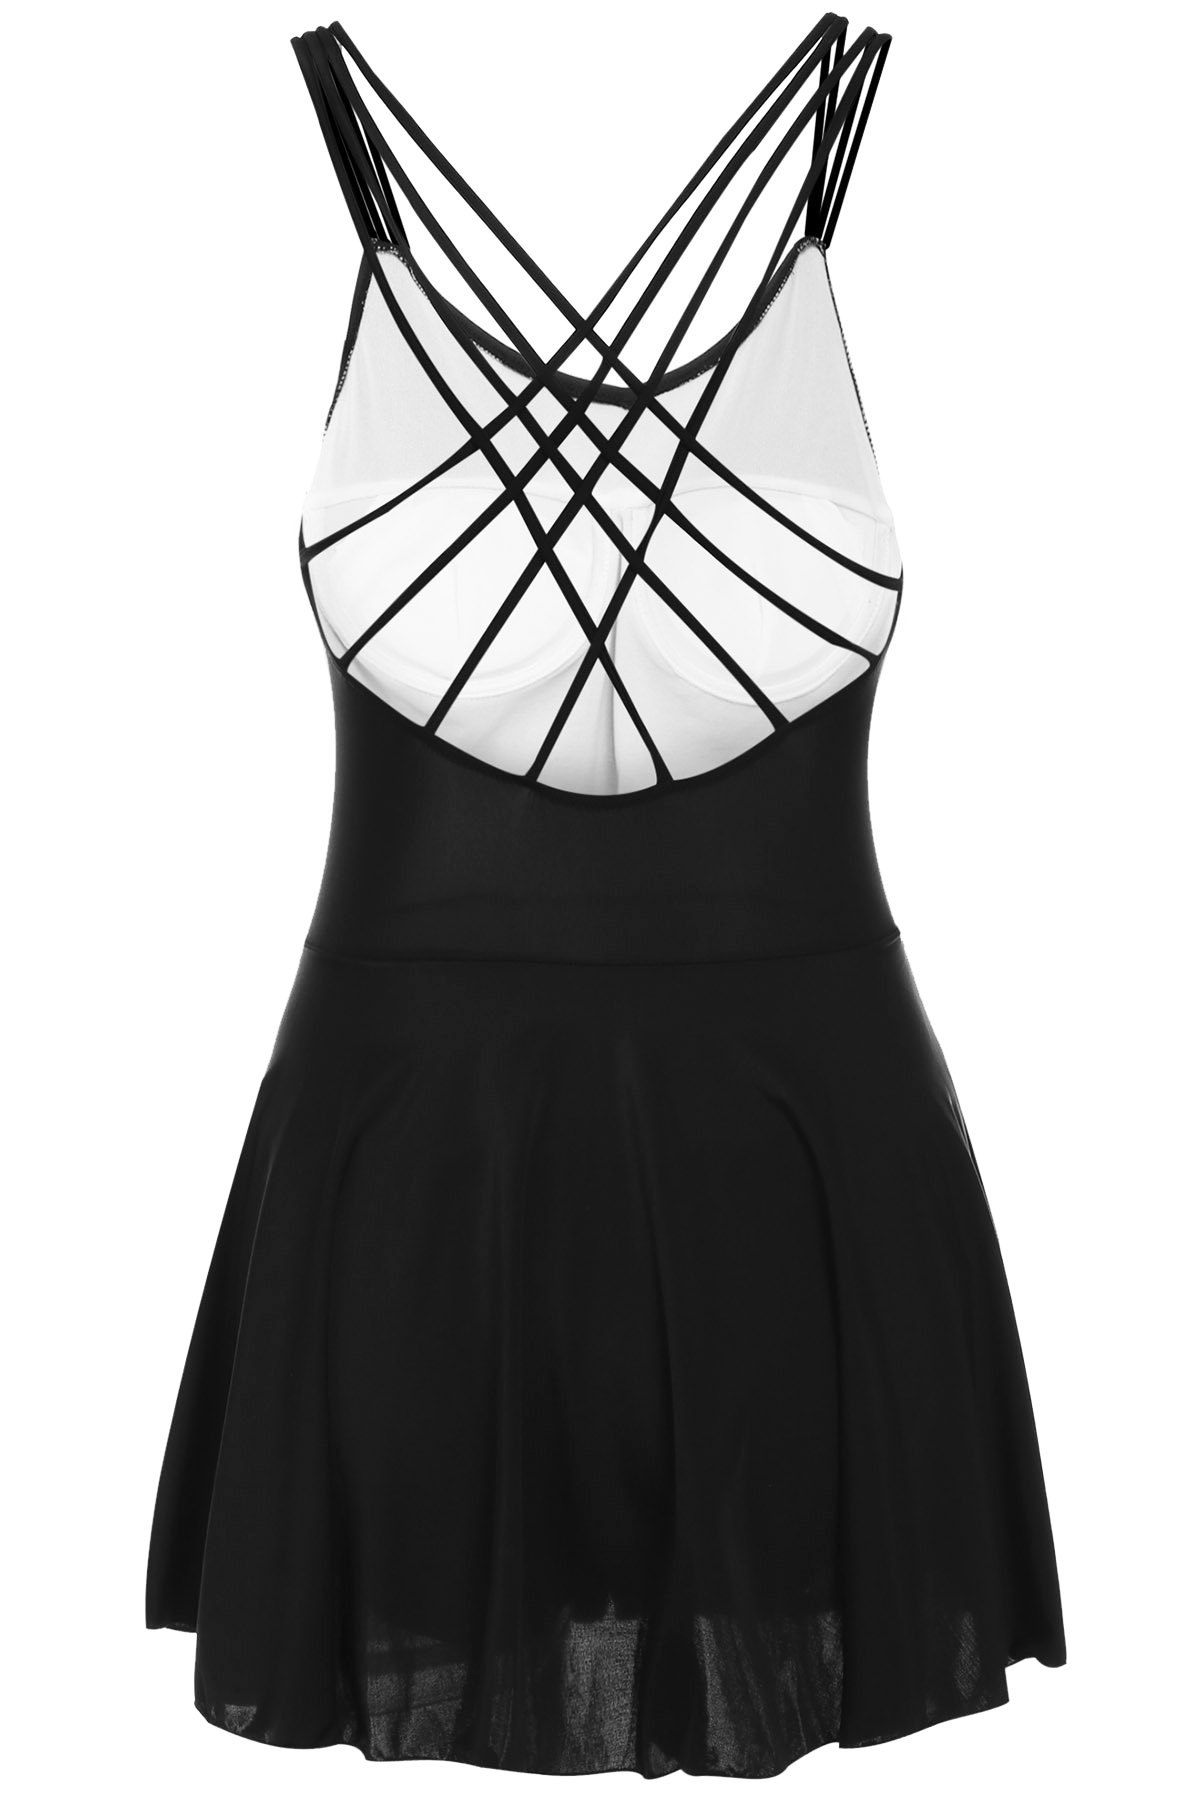 Criss-Cross Strappy Swimsuit - BLACK M